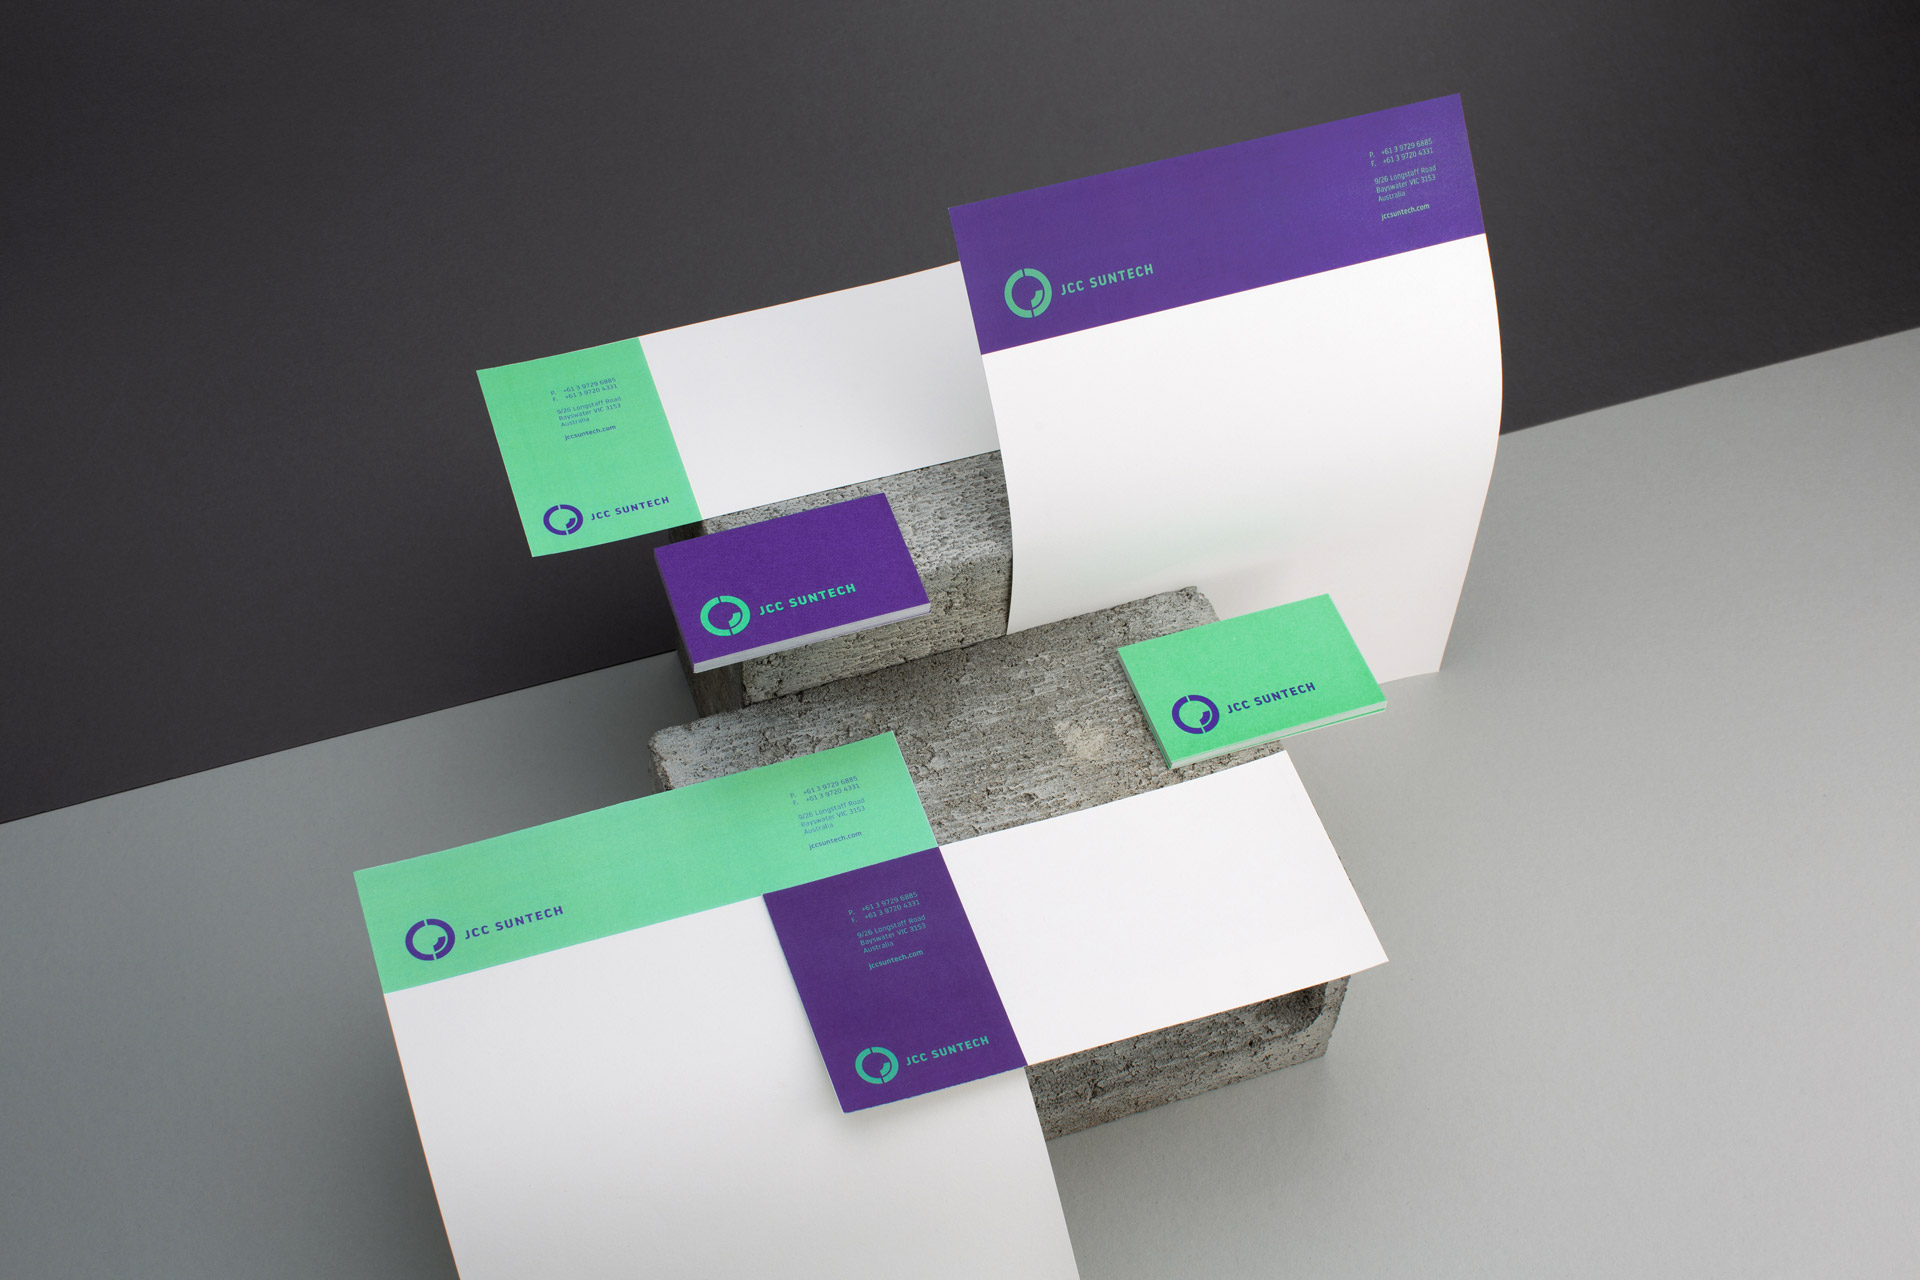 Stationery set, business card, letterhead, with compliment design